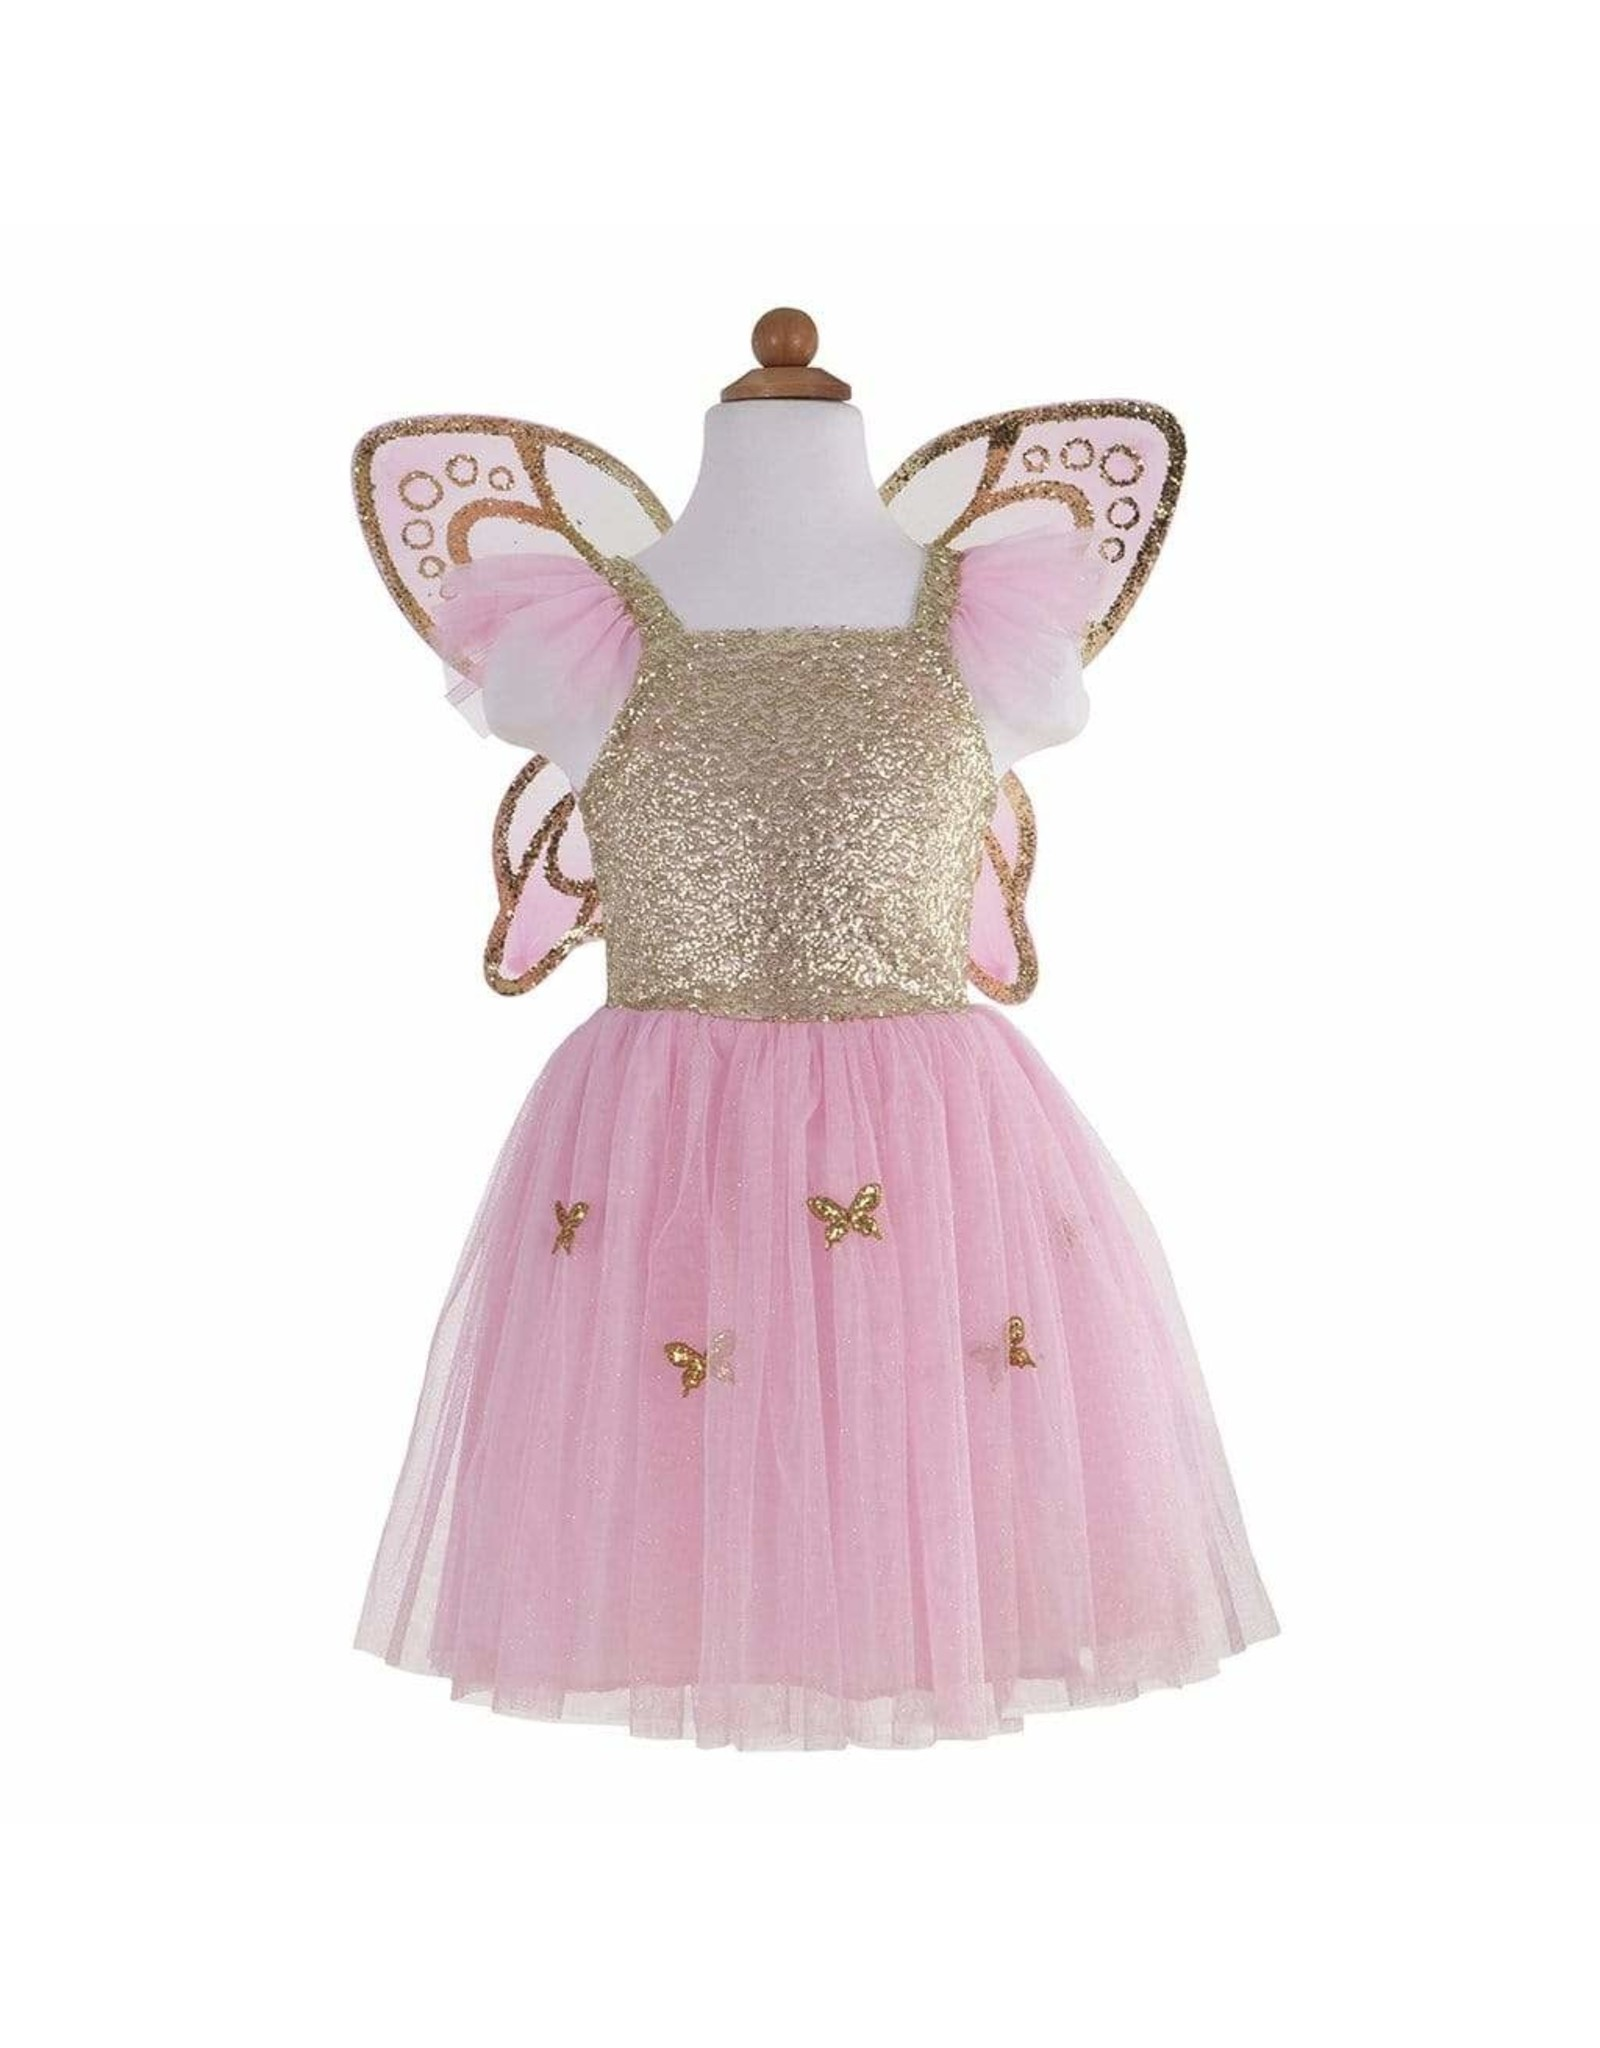 Great Pretenders Gold Butterfly Dress w Wings Ages 5-7